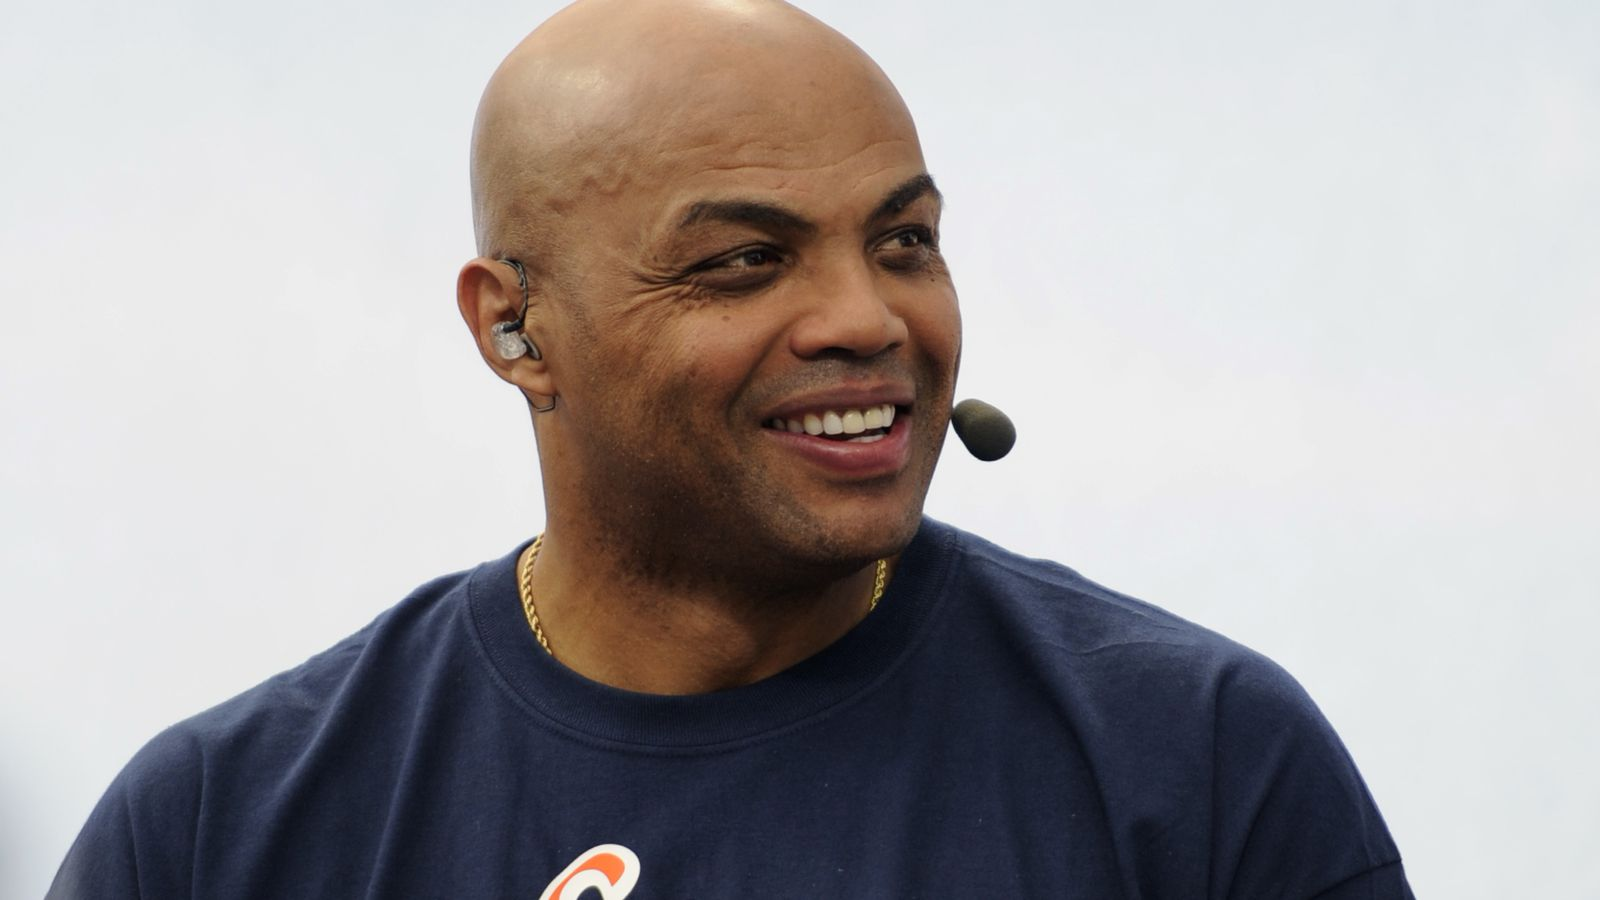 Charles Barkley makes fun of LeBron James's new movie and NBA Finals performance